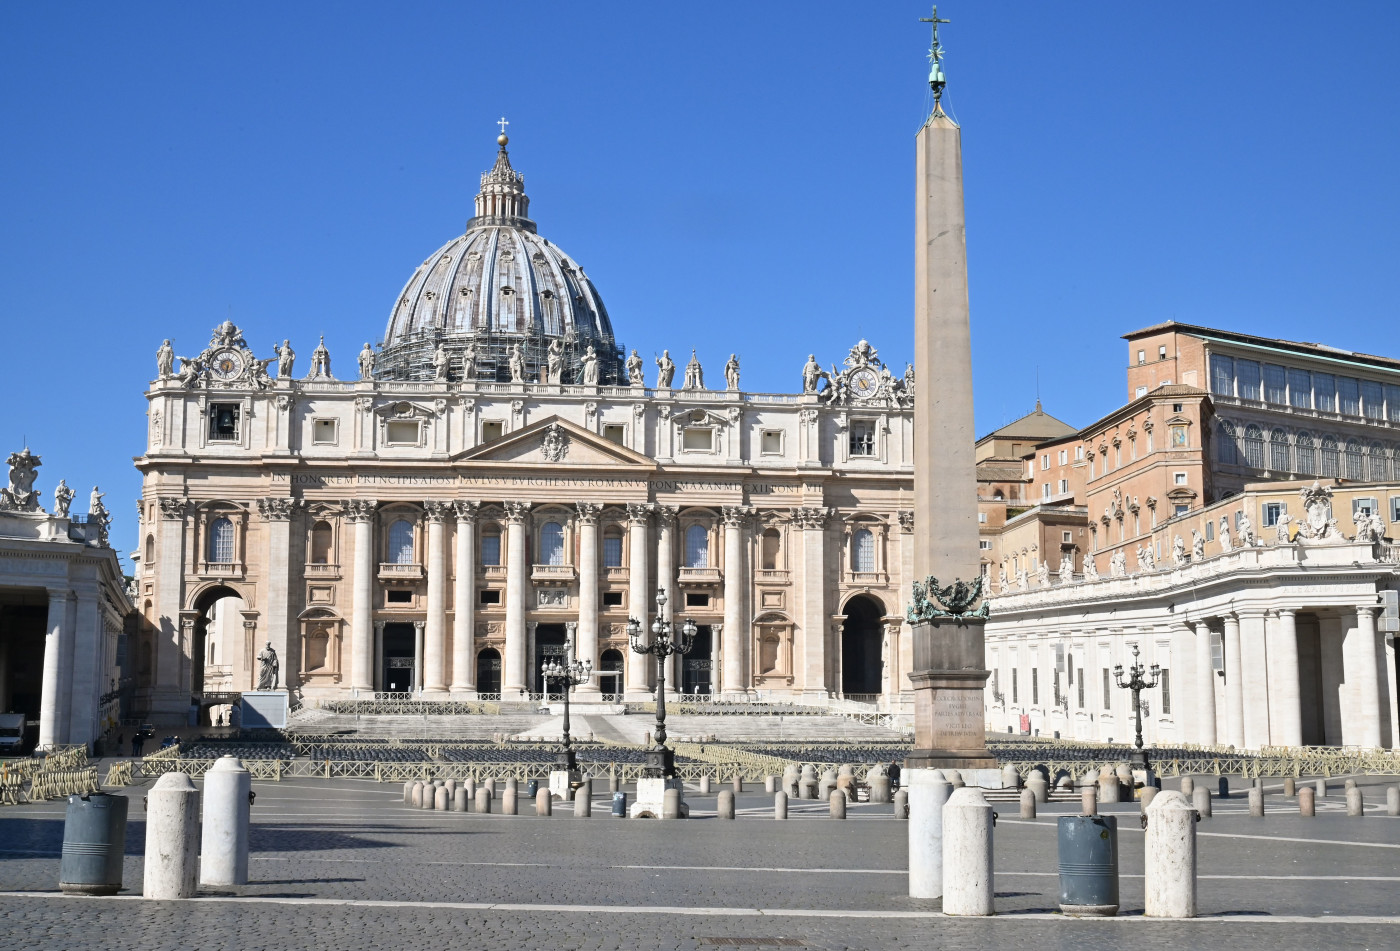 Deserted St. Peter's basilica during coronavirus outbreak